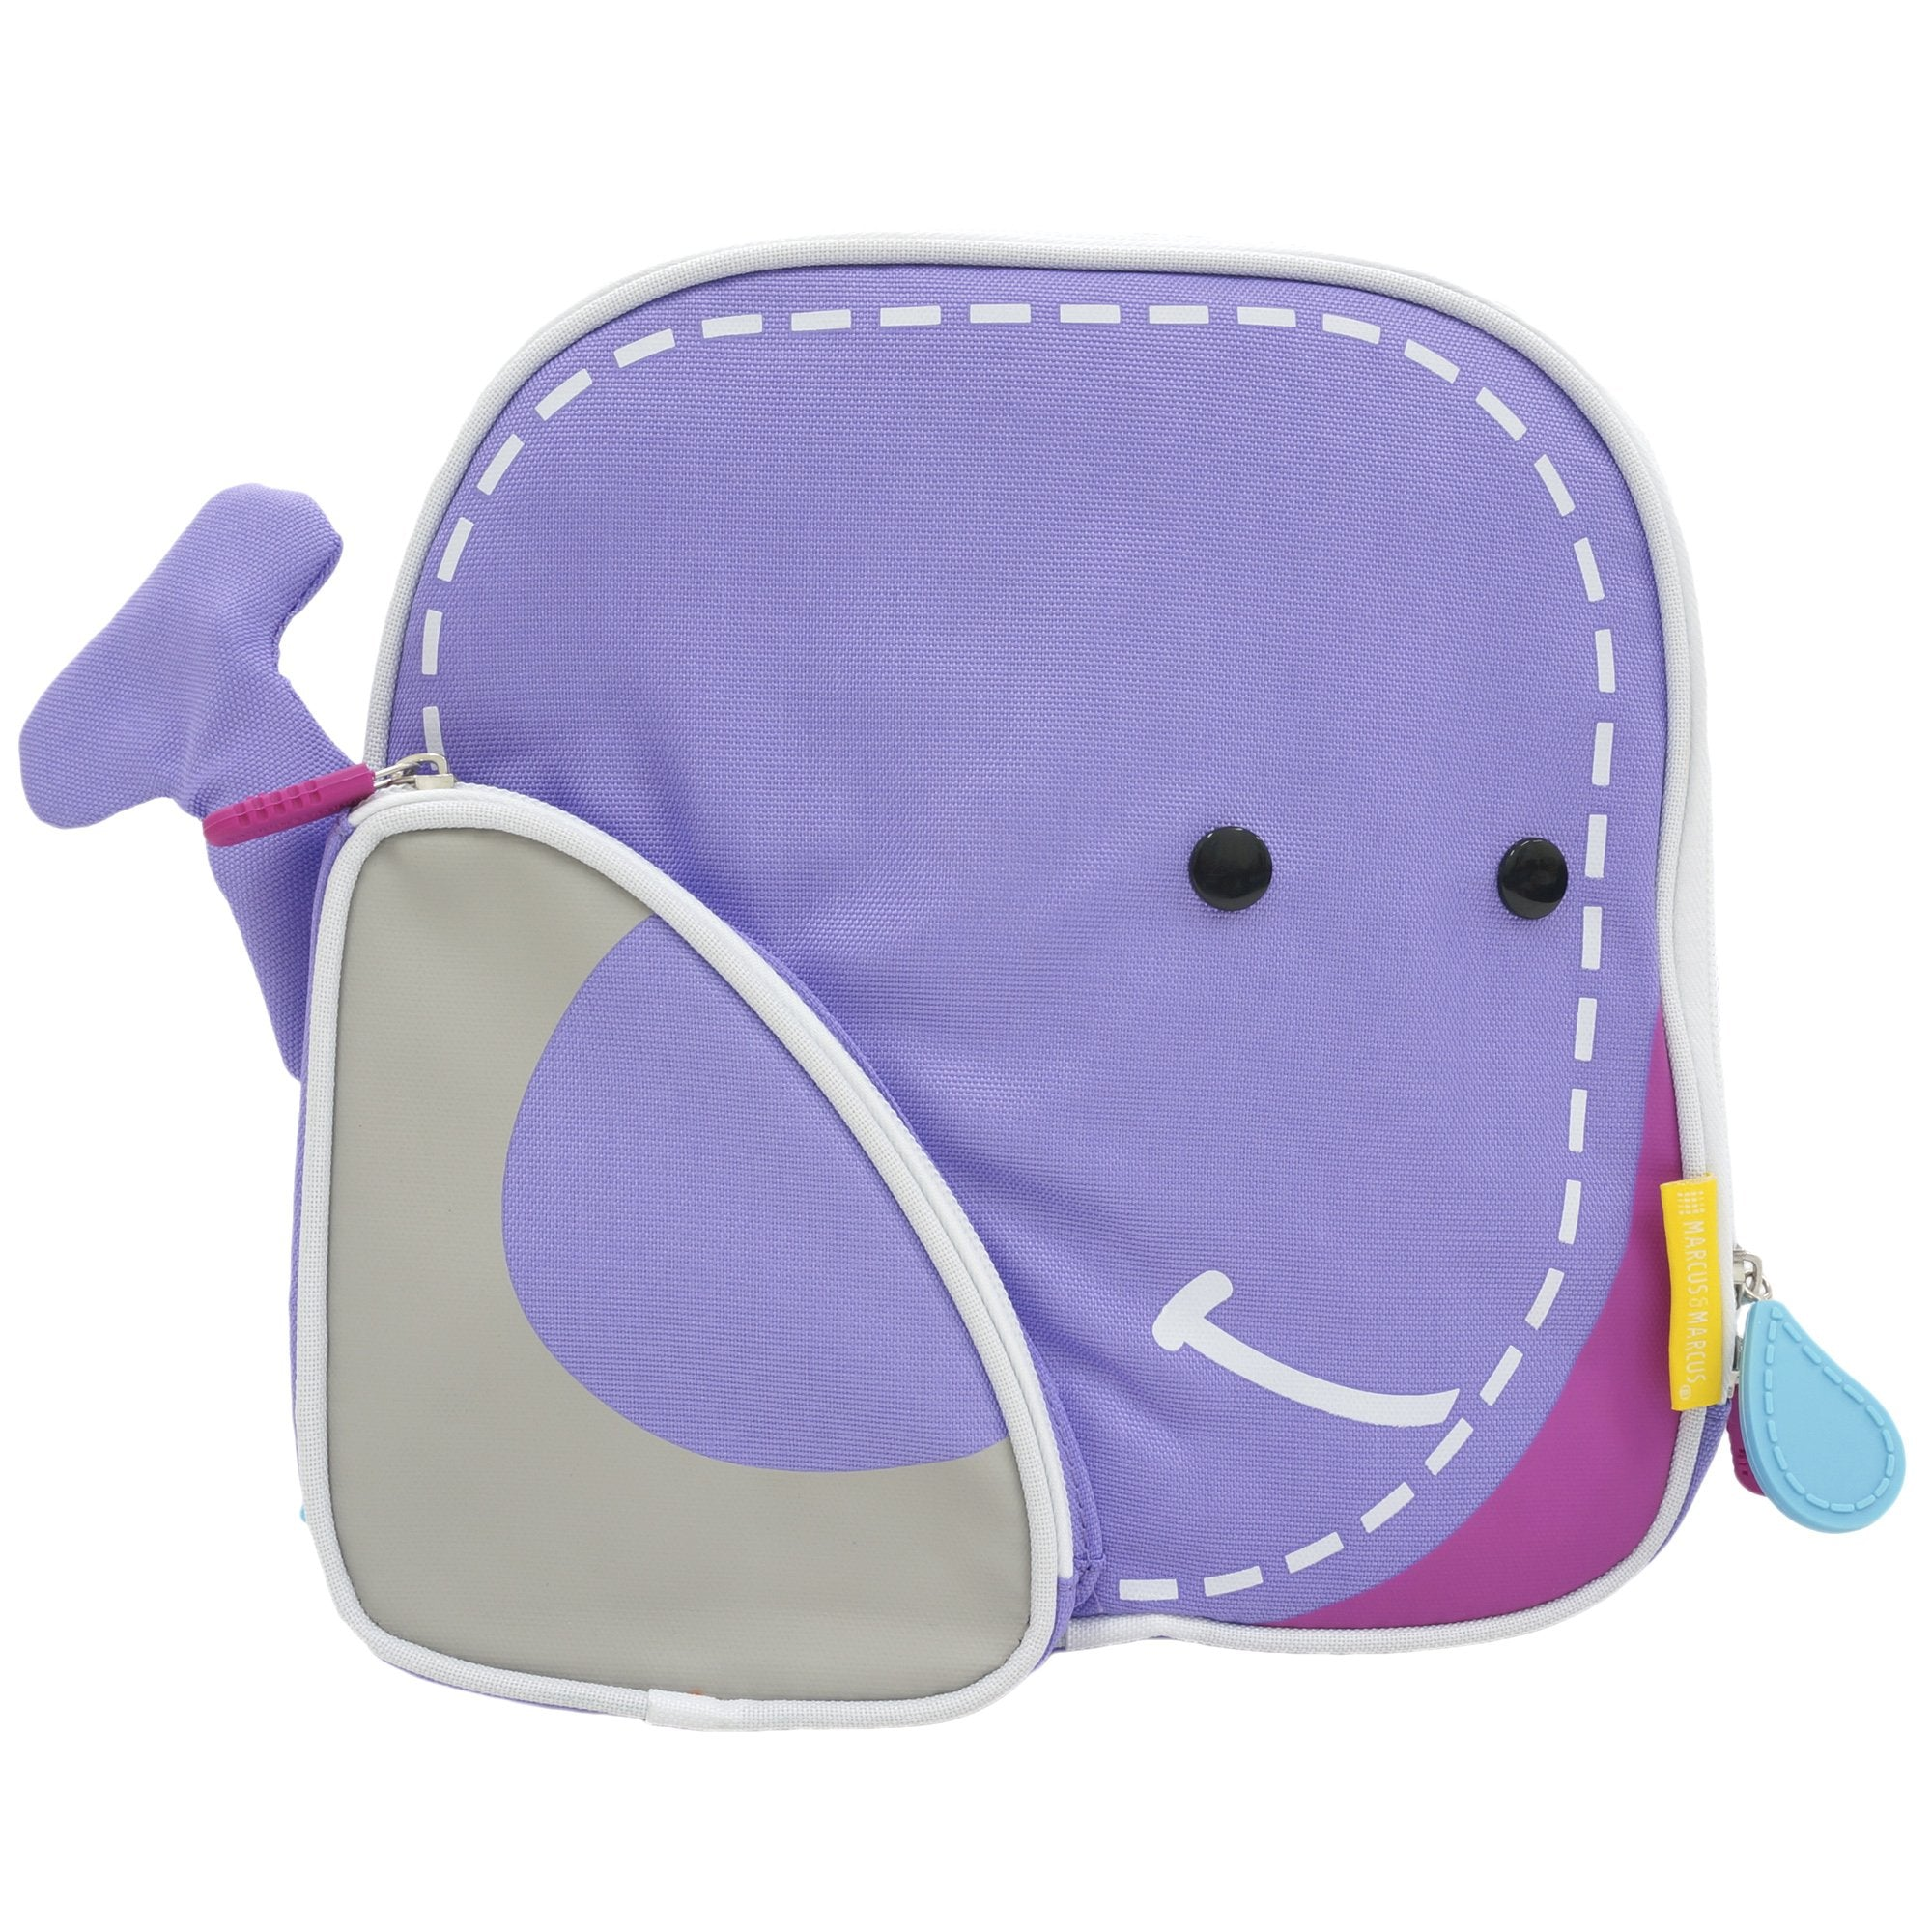 Marcus & Marcus Insulated Lunch Bag - Willo